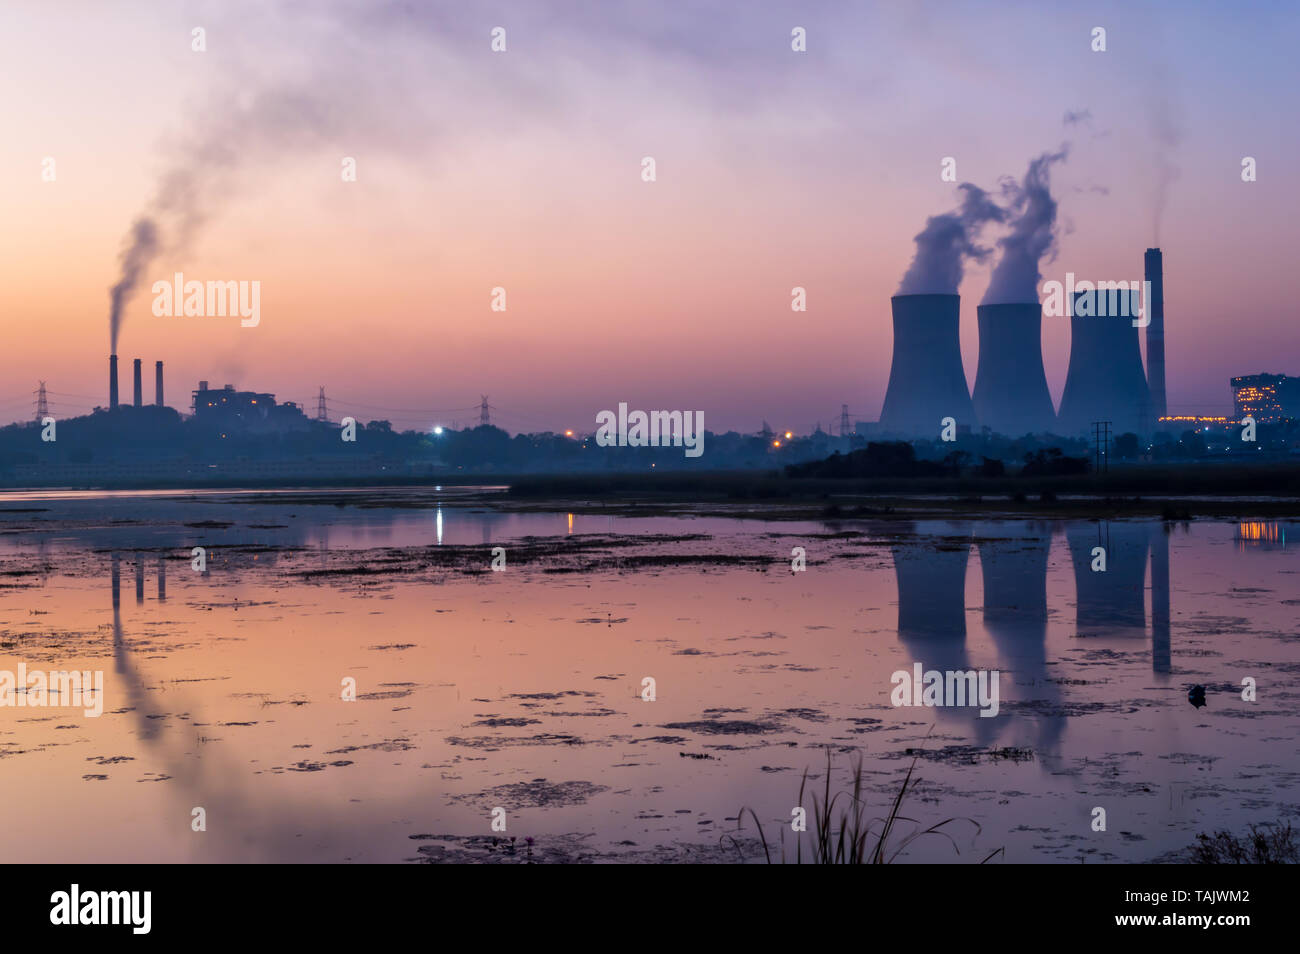 Coal powered thermal power plant emitting smoke and steam from chimney and cooling tower. Reflection of cooling tower and chimney on lake. Stock Photo